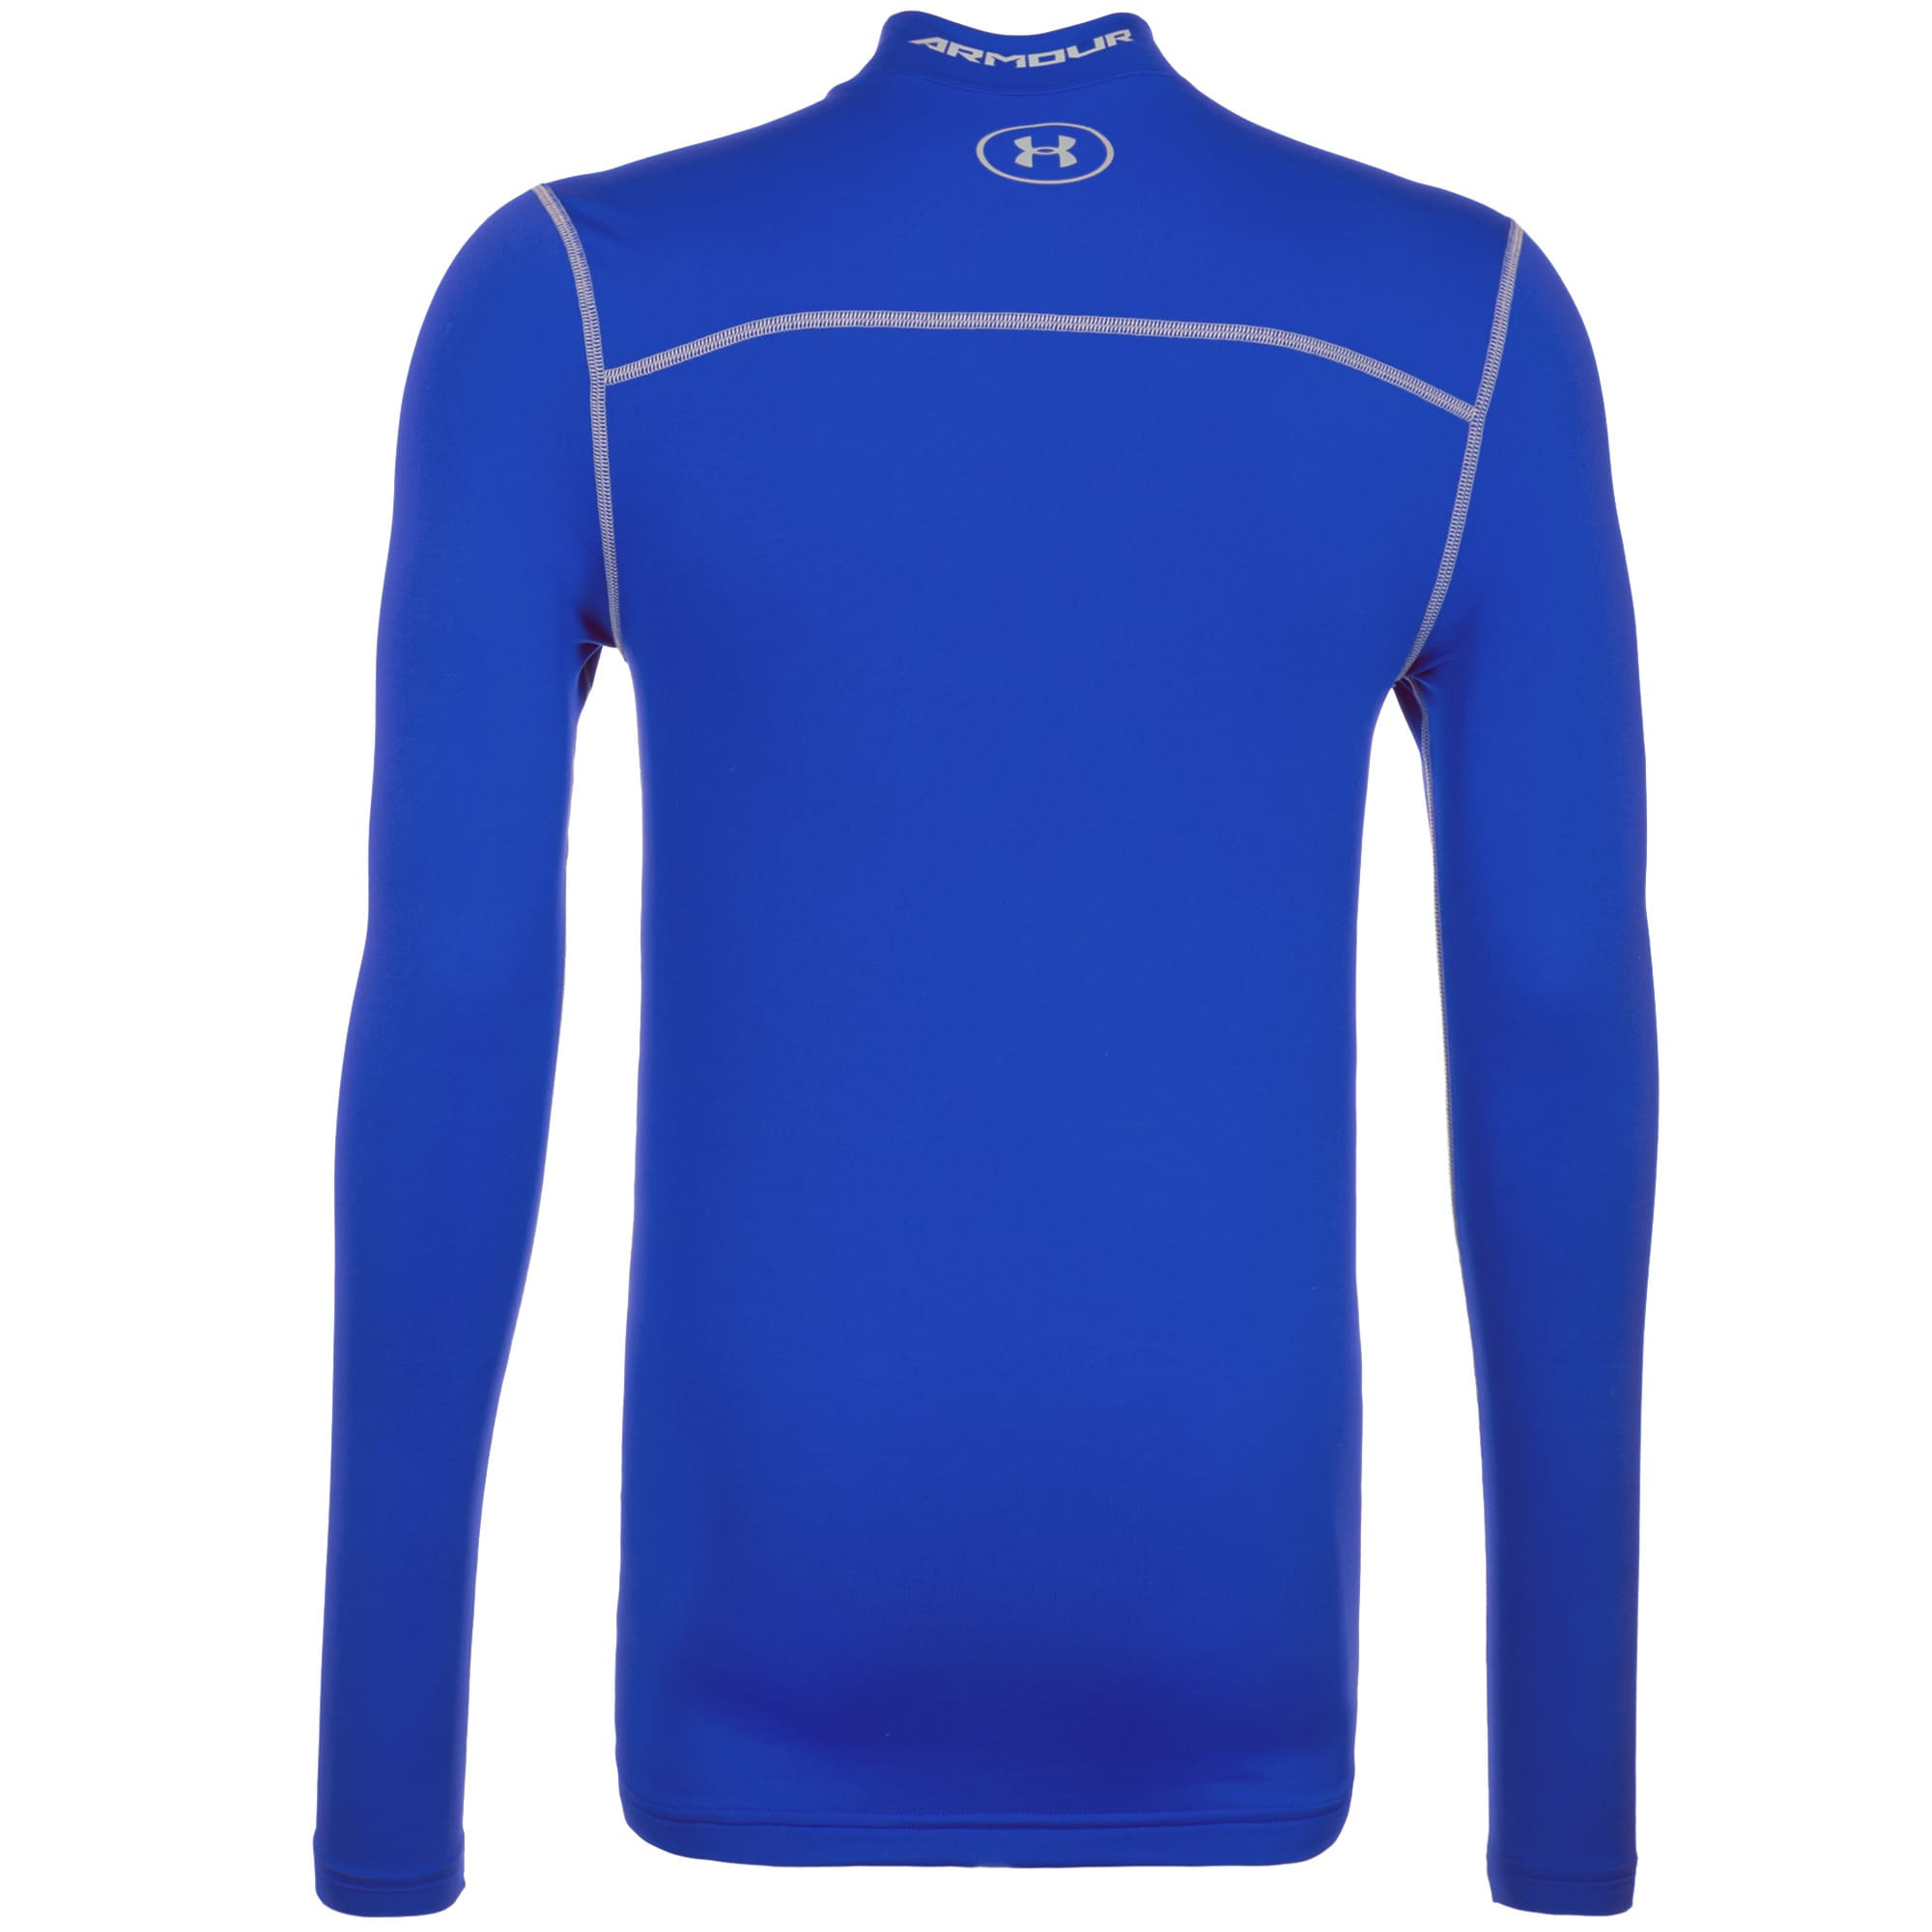 UNDER ARMOUR, Heren Functioneel shirt, blauw